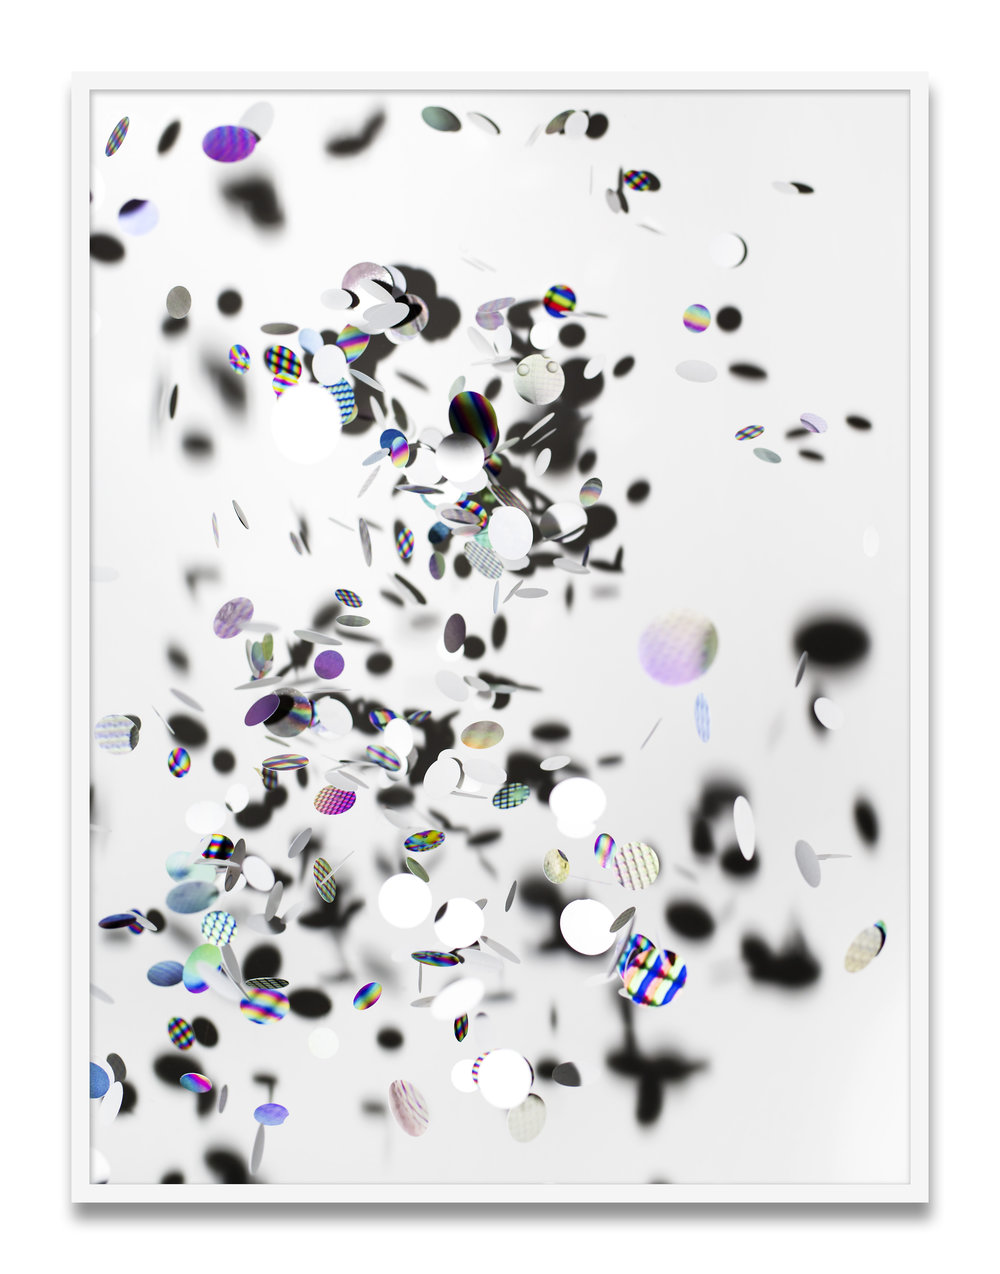 Valerie Green  perforations (tossed) , 2016 Archival pigment print 30 x 21 1/2 inches